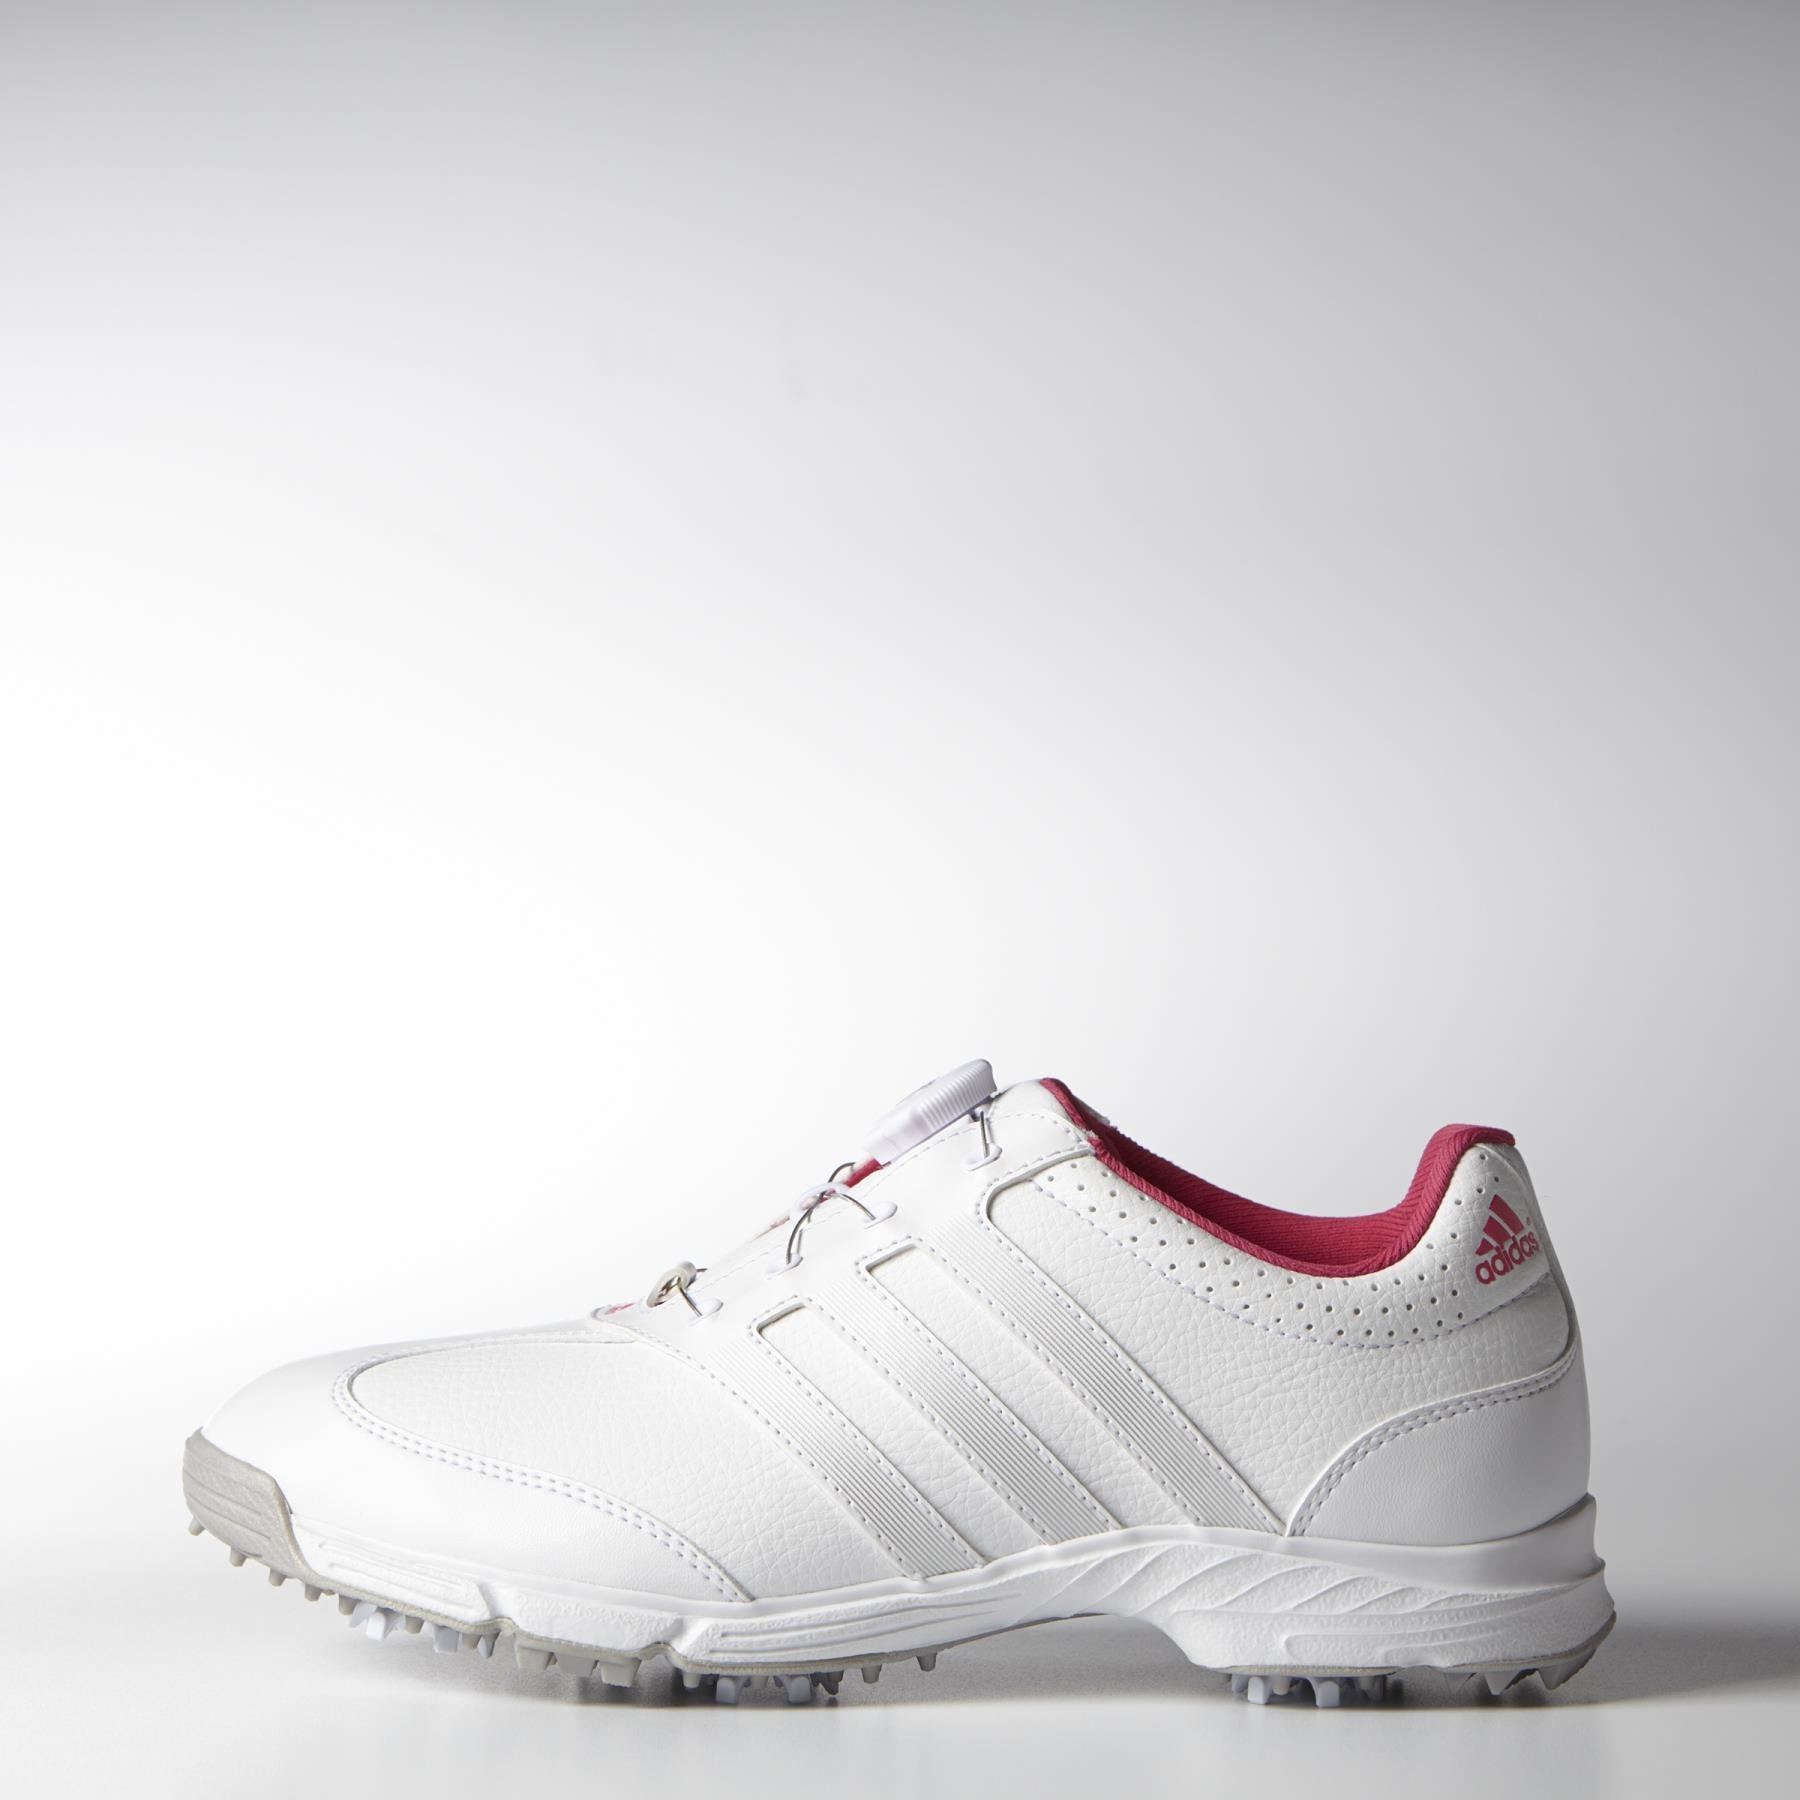 adidas Women's Response BOA White Golf Shoe